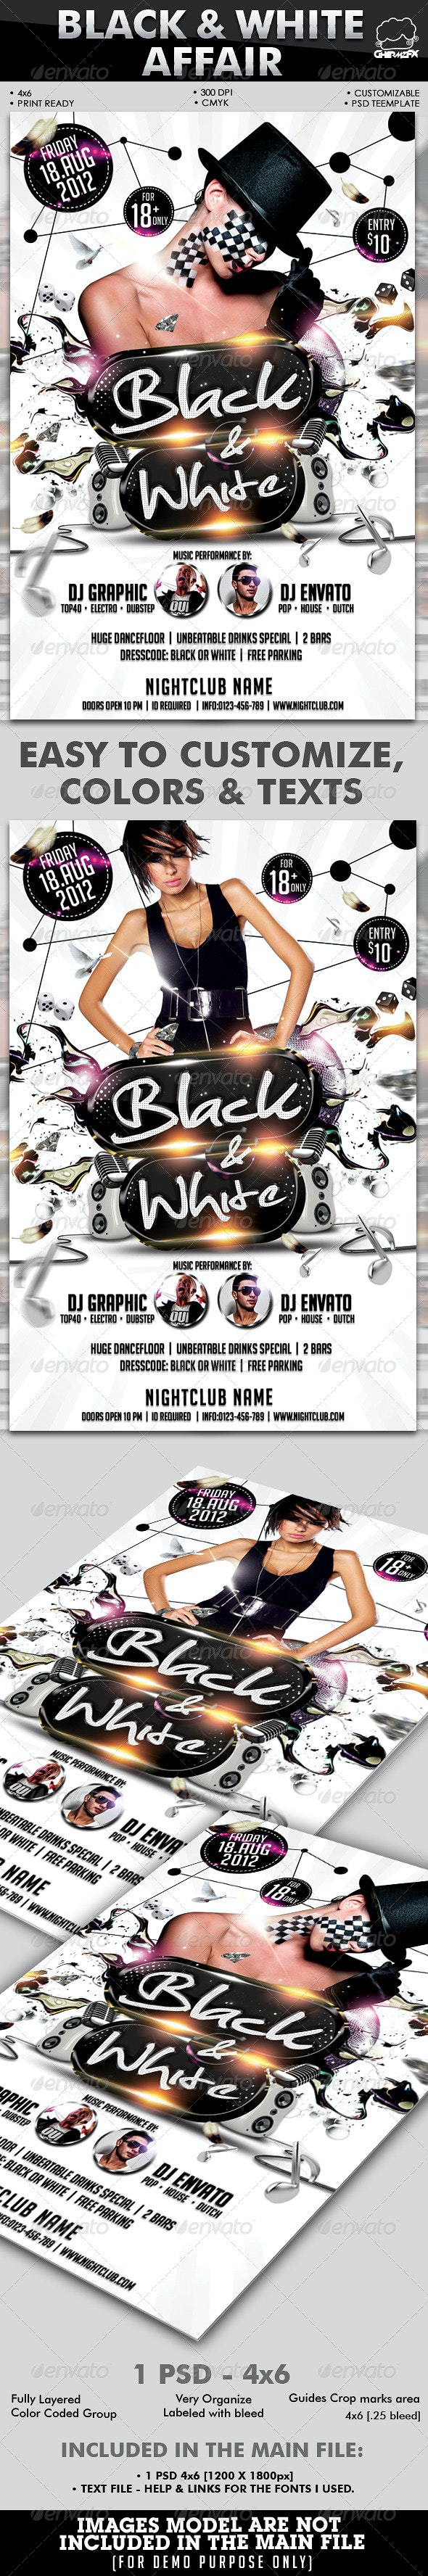 Black & White Affair Flyer Template - Clubs & Parties Events